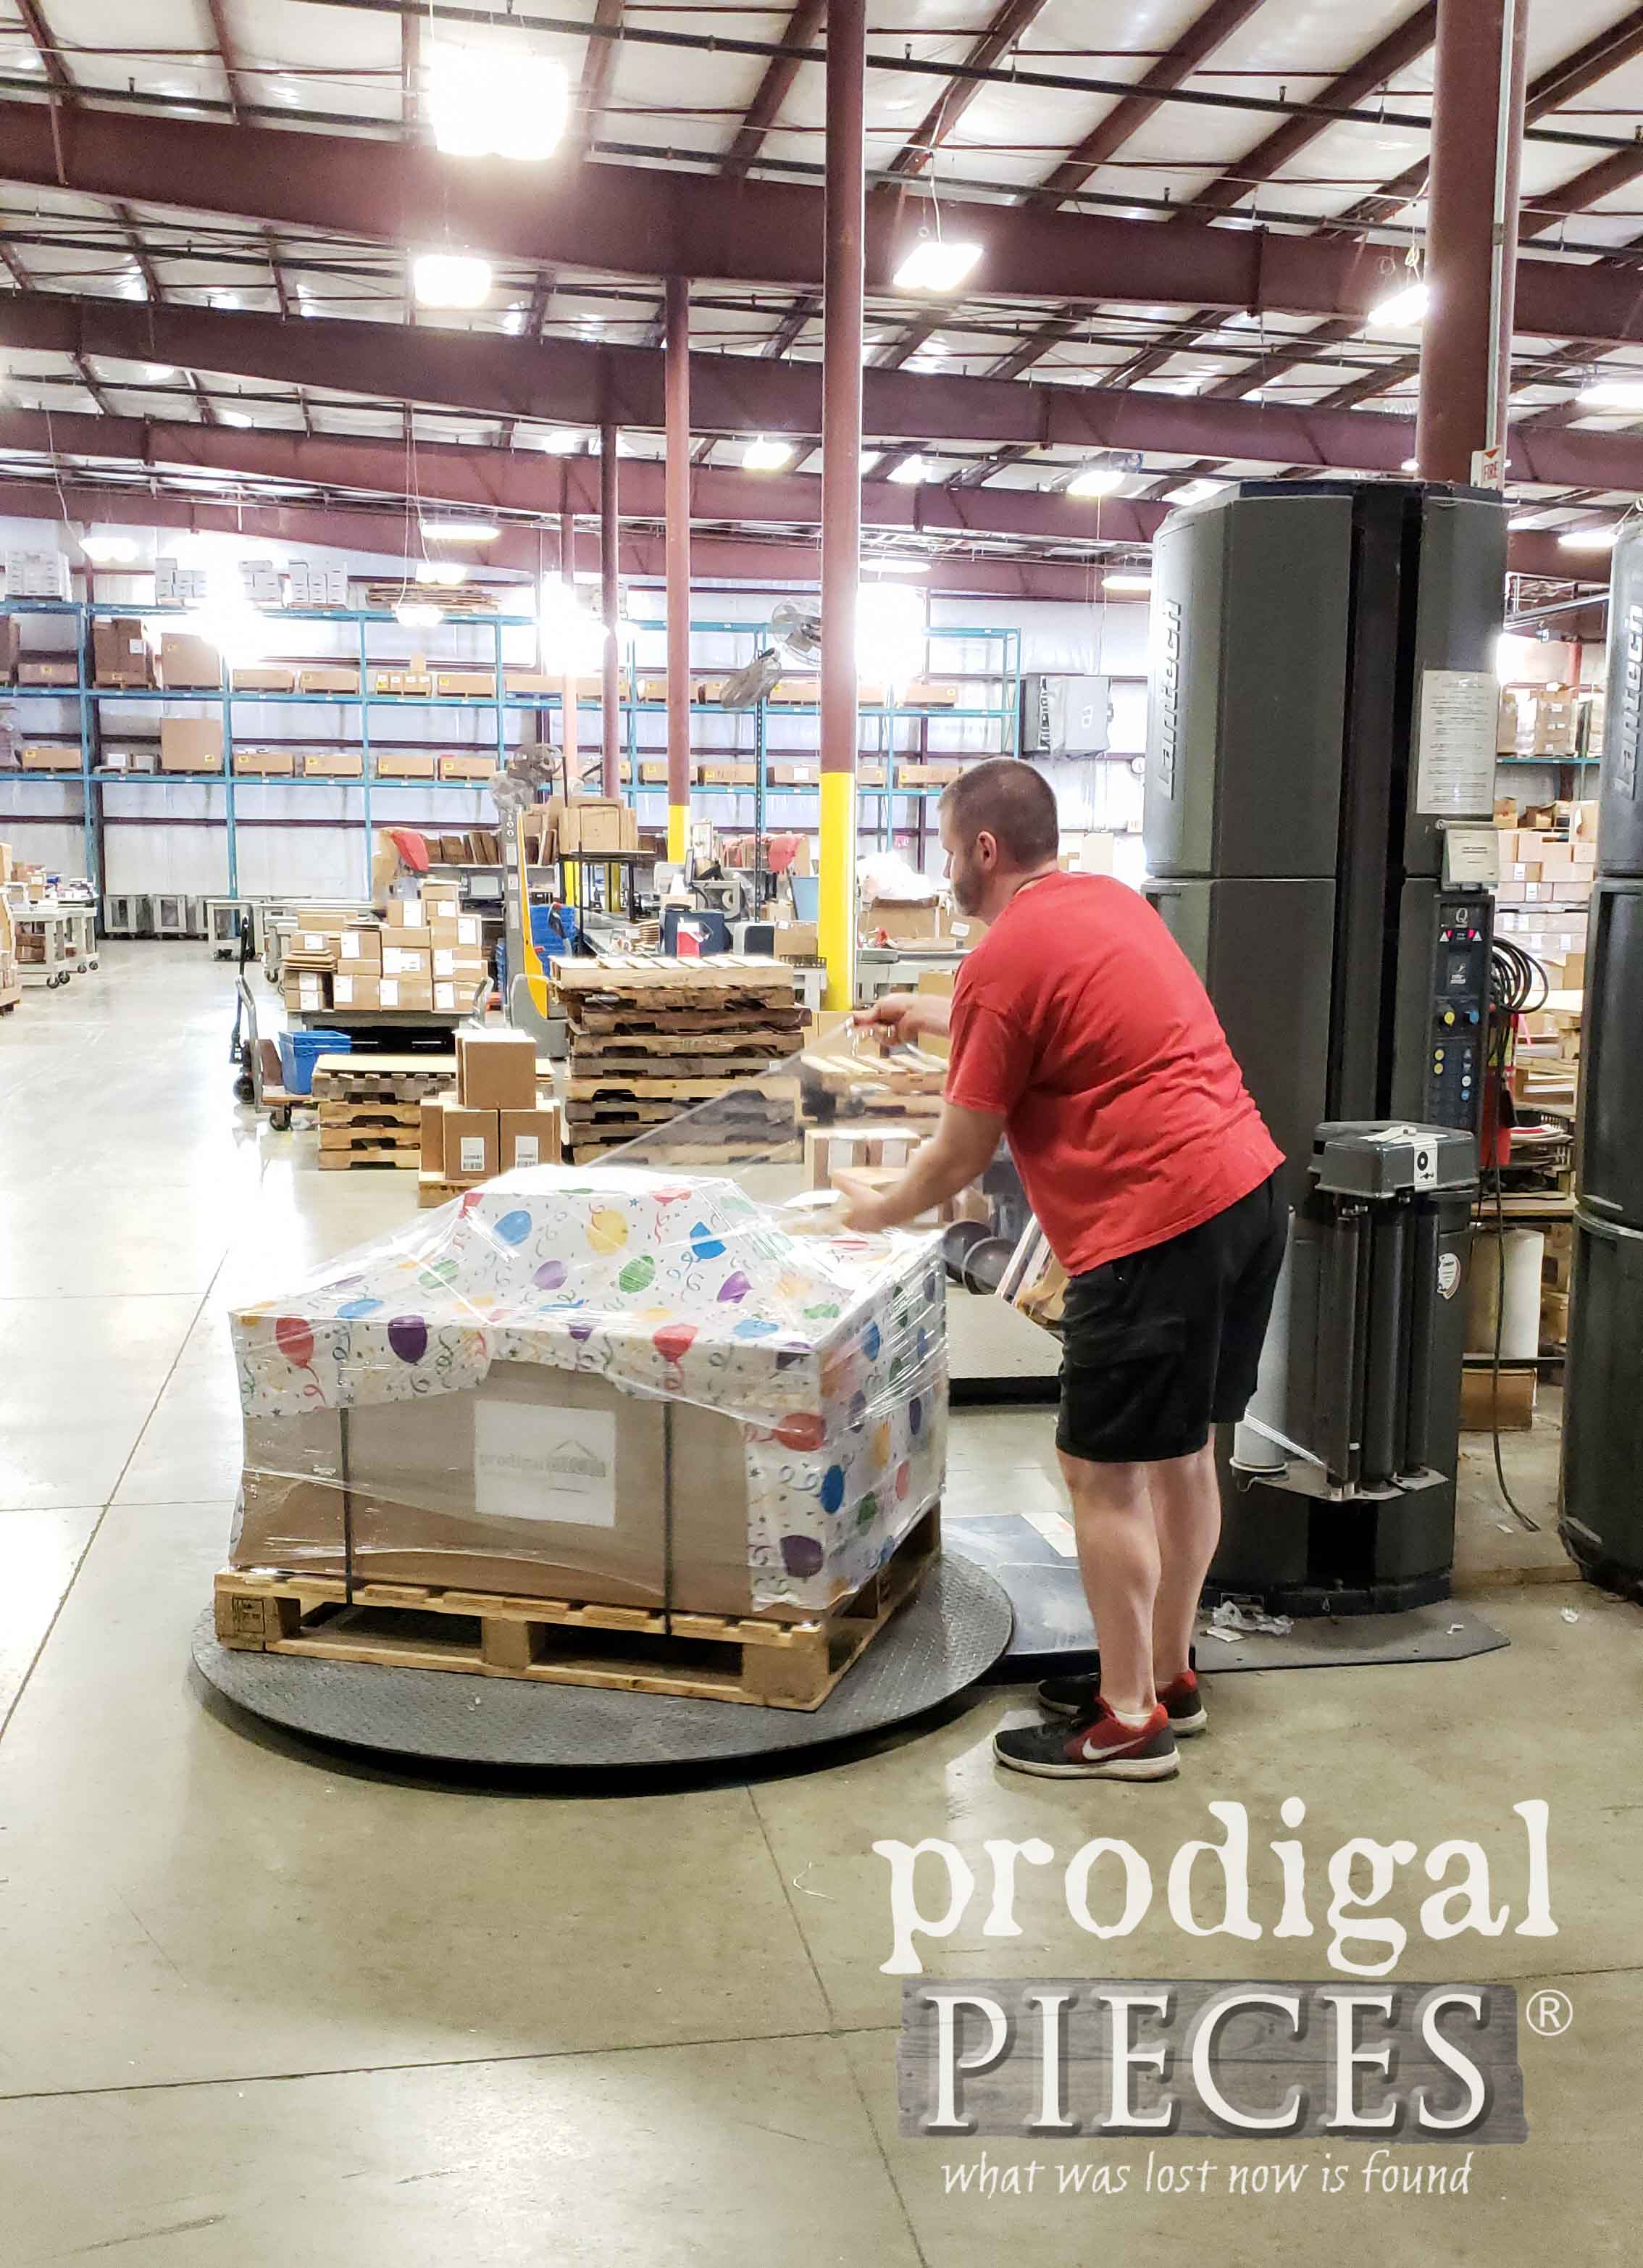 Shrink Wrapping Pallet for Finding Home Furniture Program by Prodigal Pieces | prodigalpieces.com